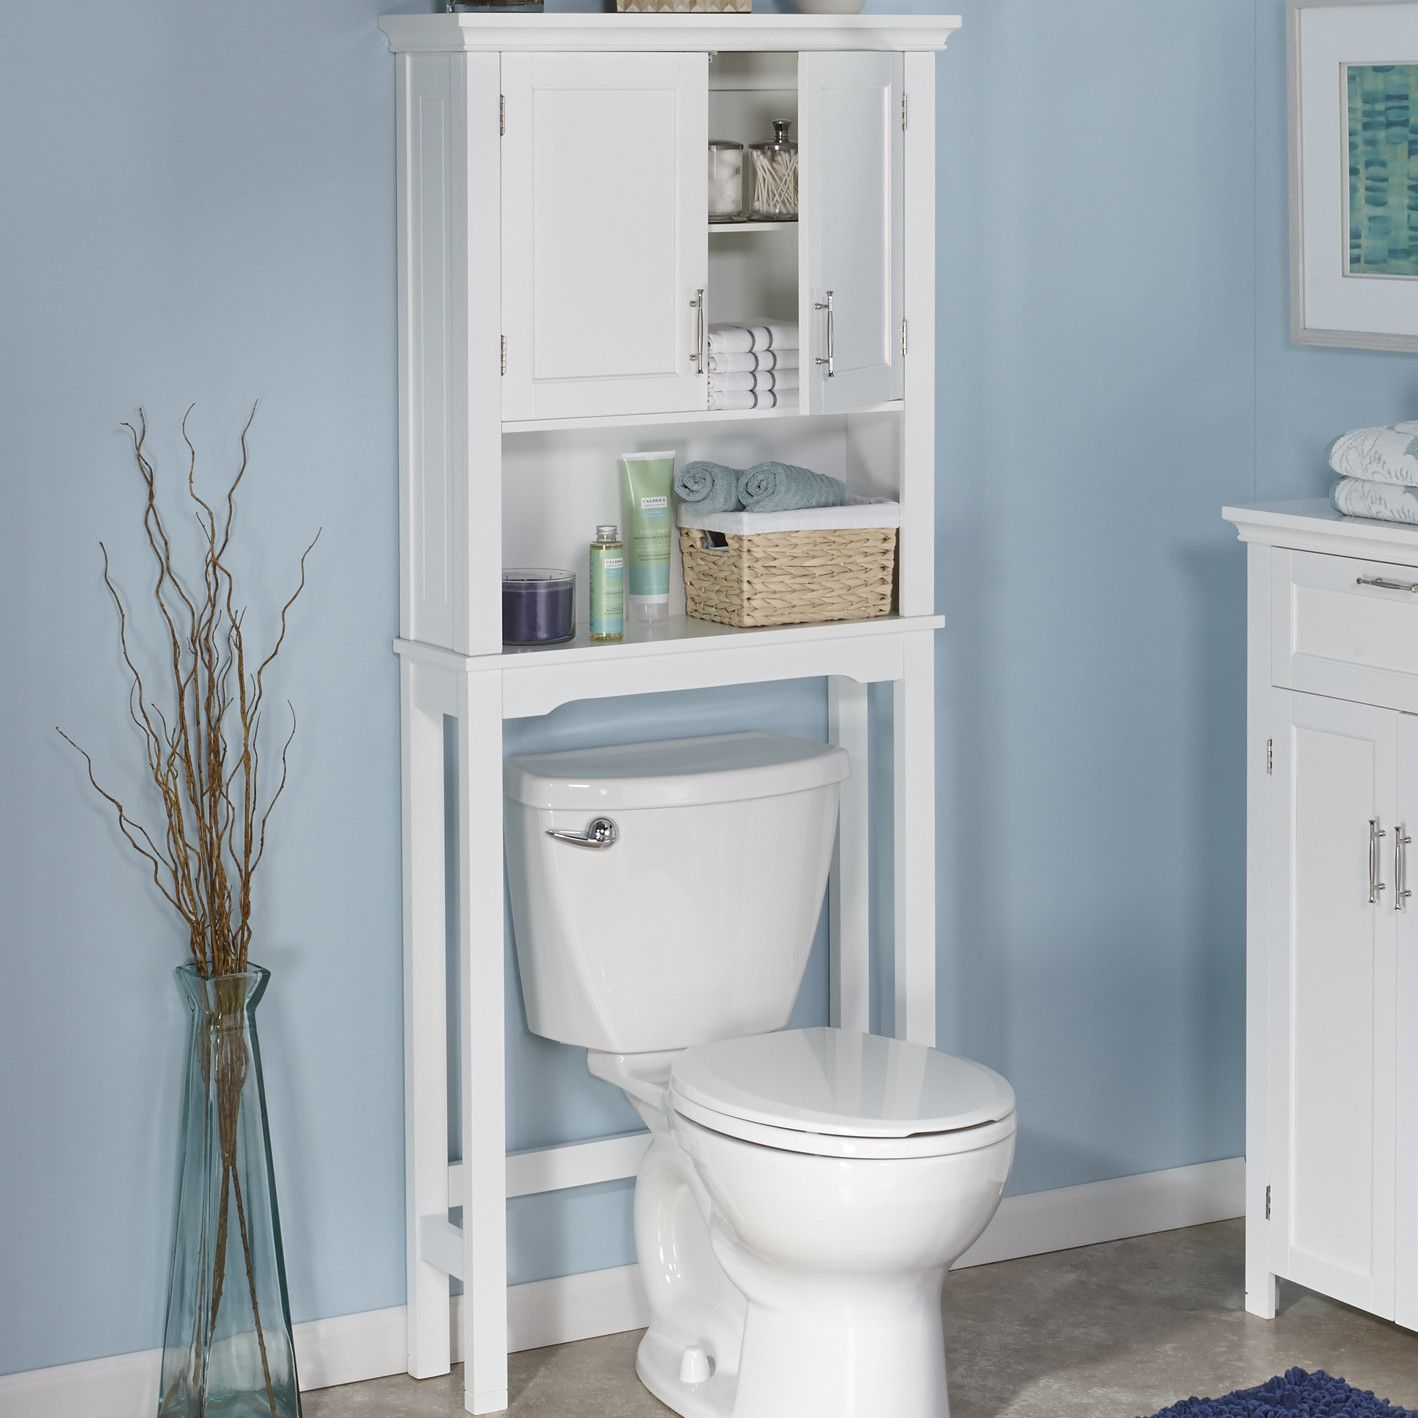 Shop Wayfair for Over-the-Toilet Storage to match every style and